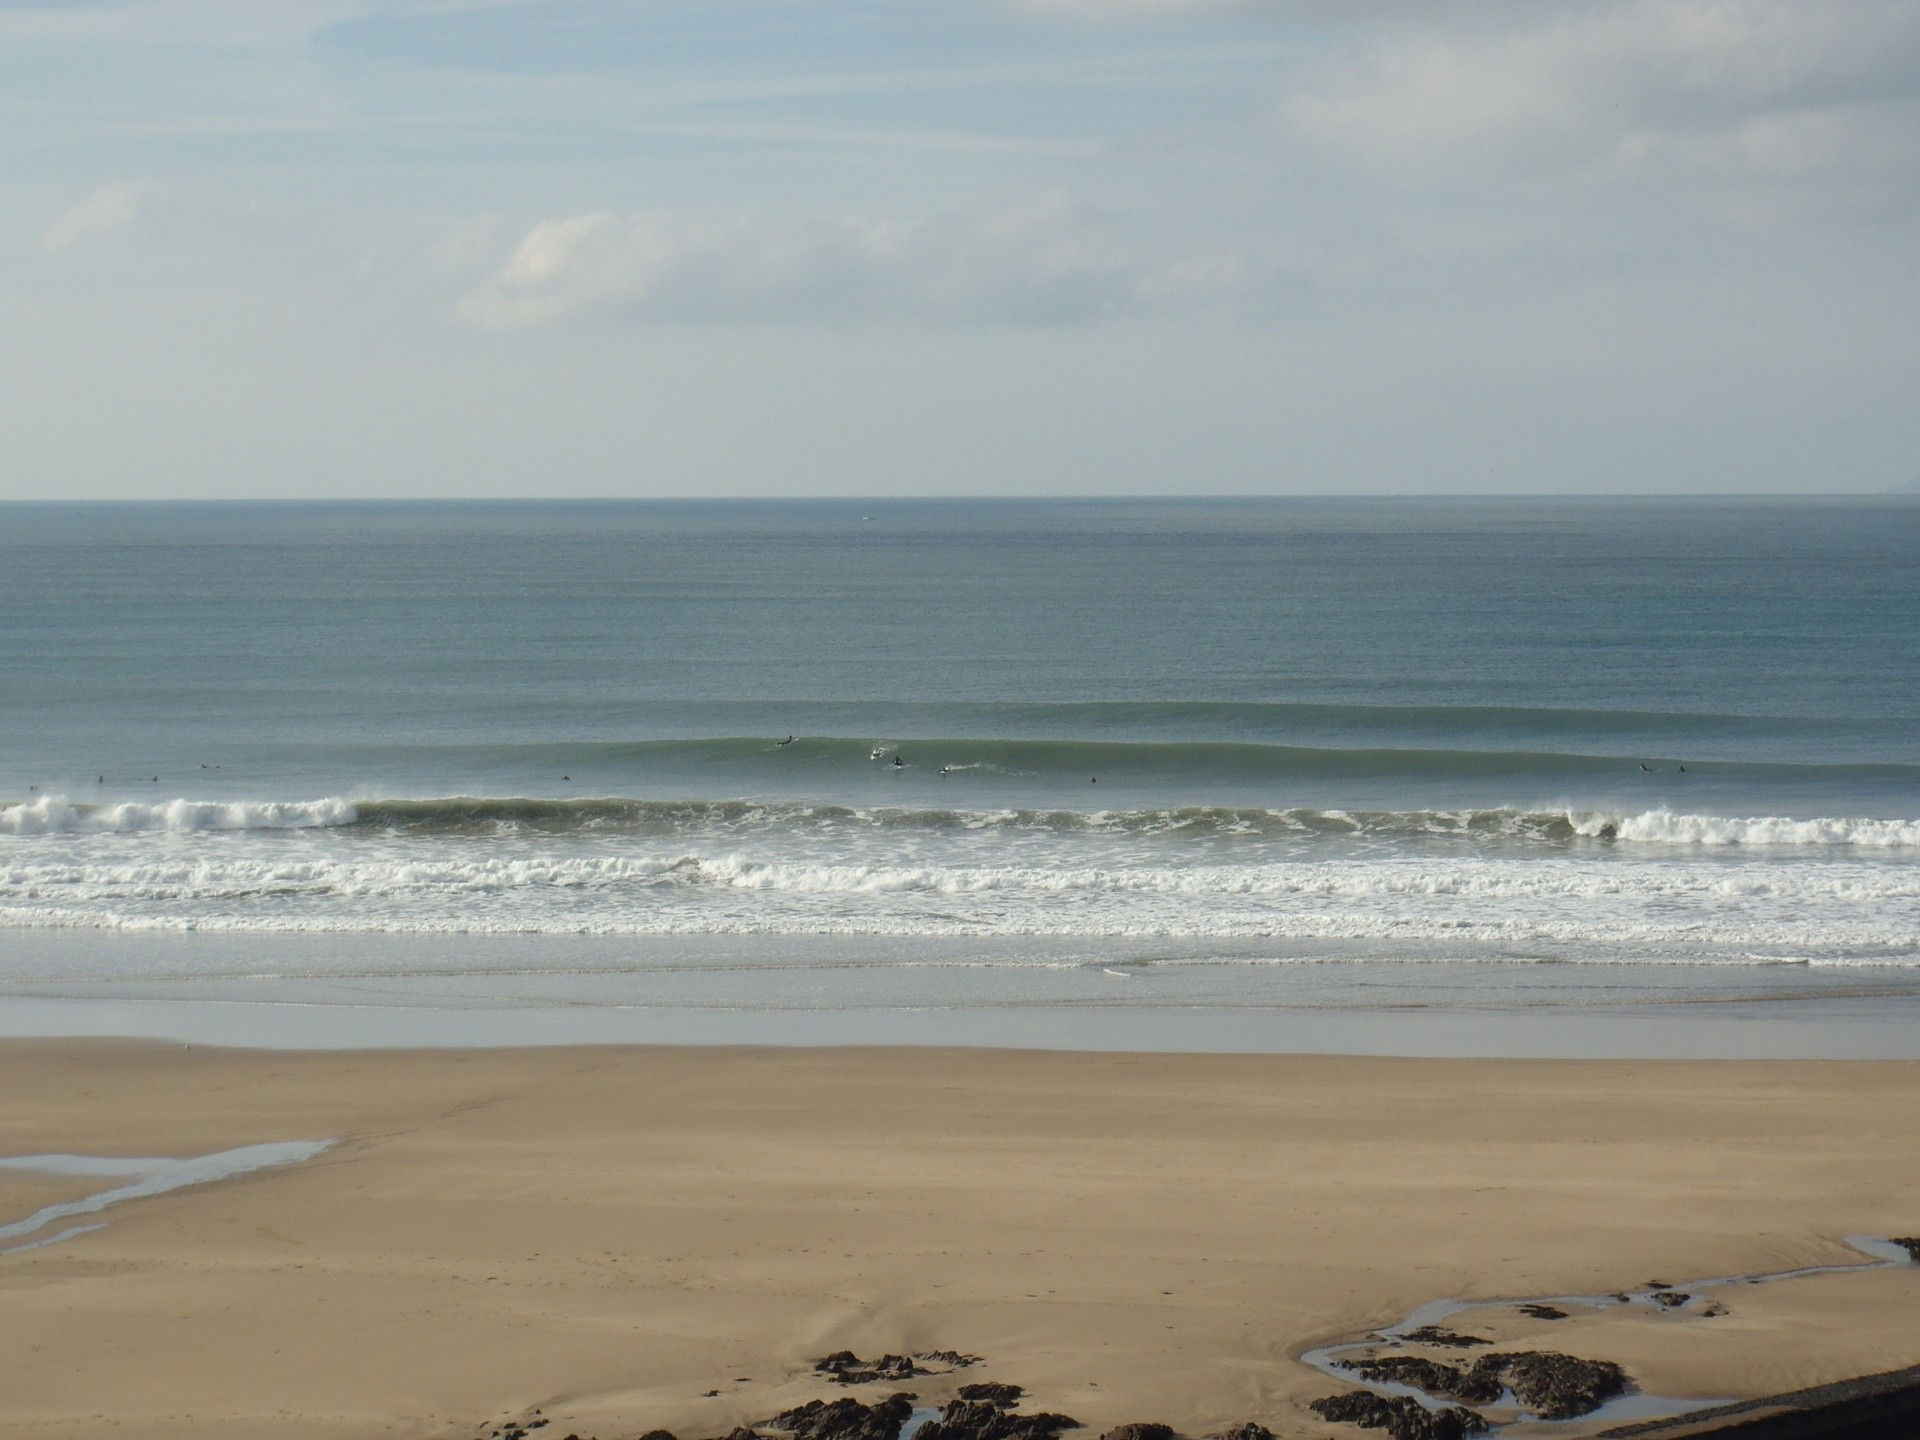 Dom longley's photo of Woolacombe